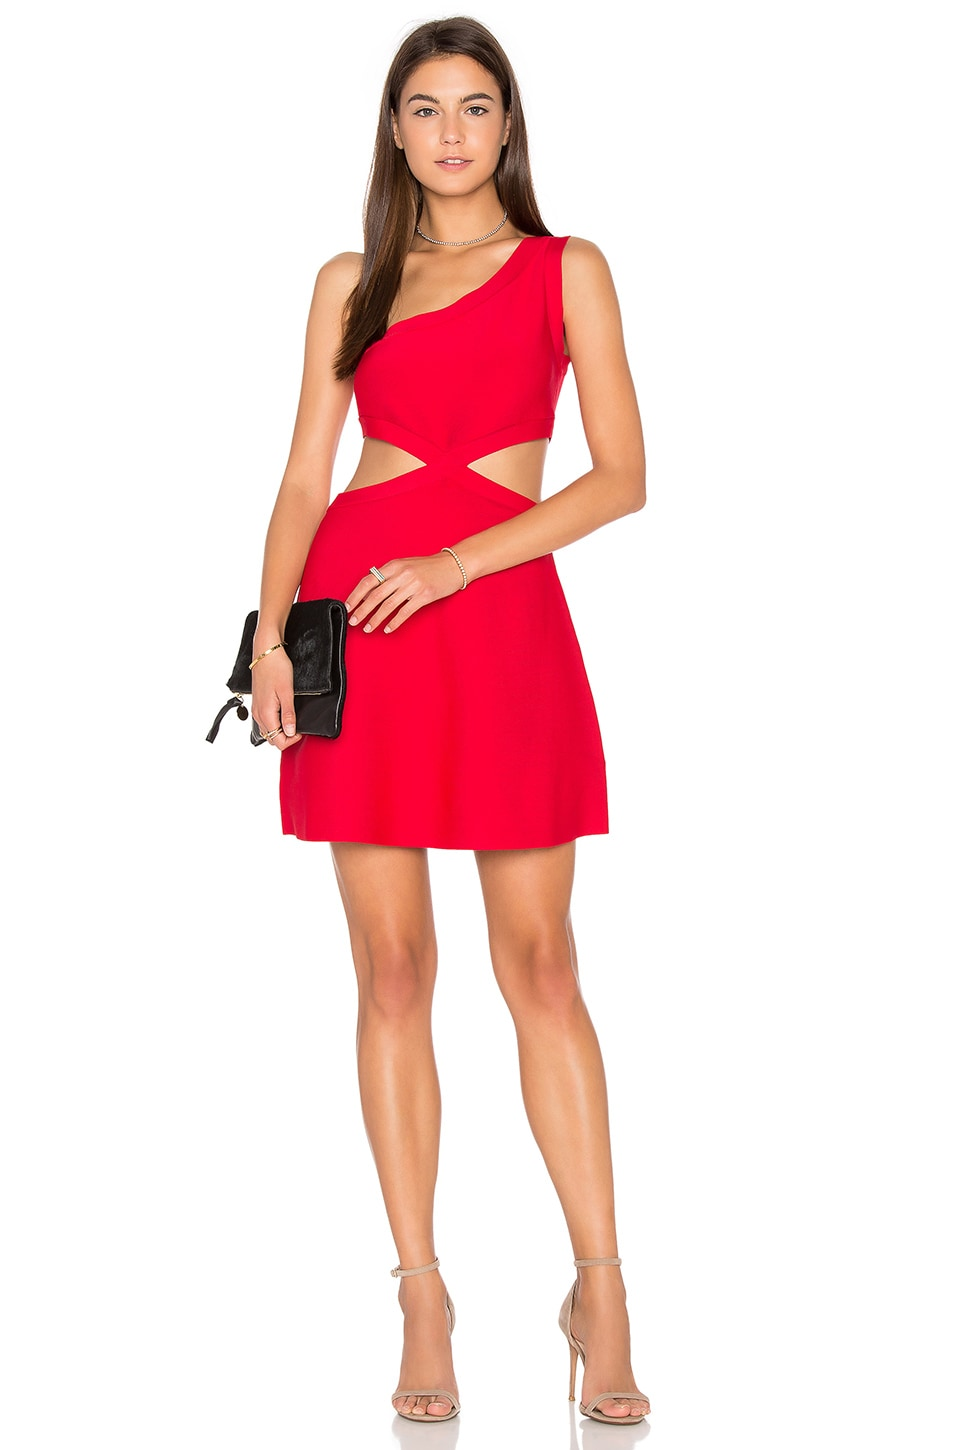 BCBGMAXAZRIA Jacquelln Mini Dress in Red Berry